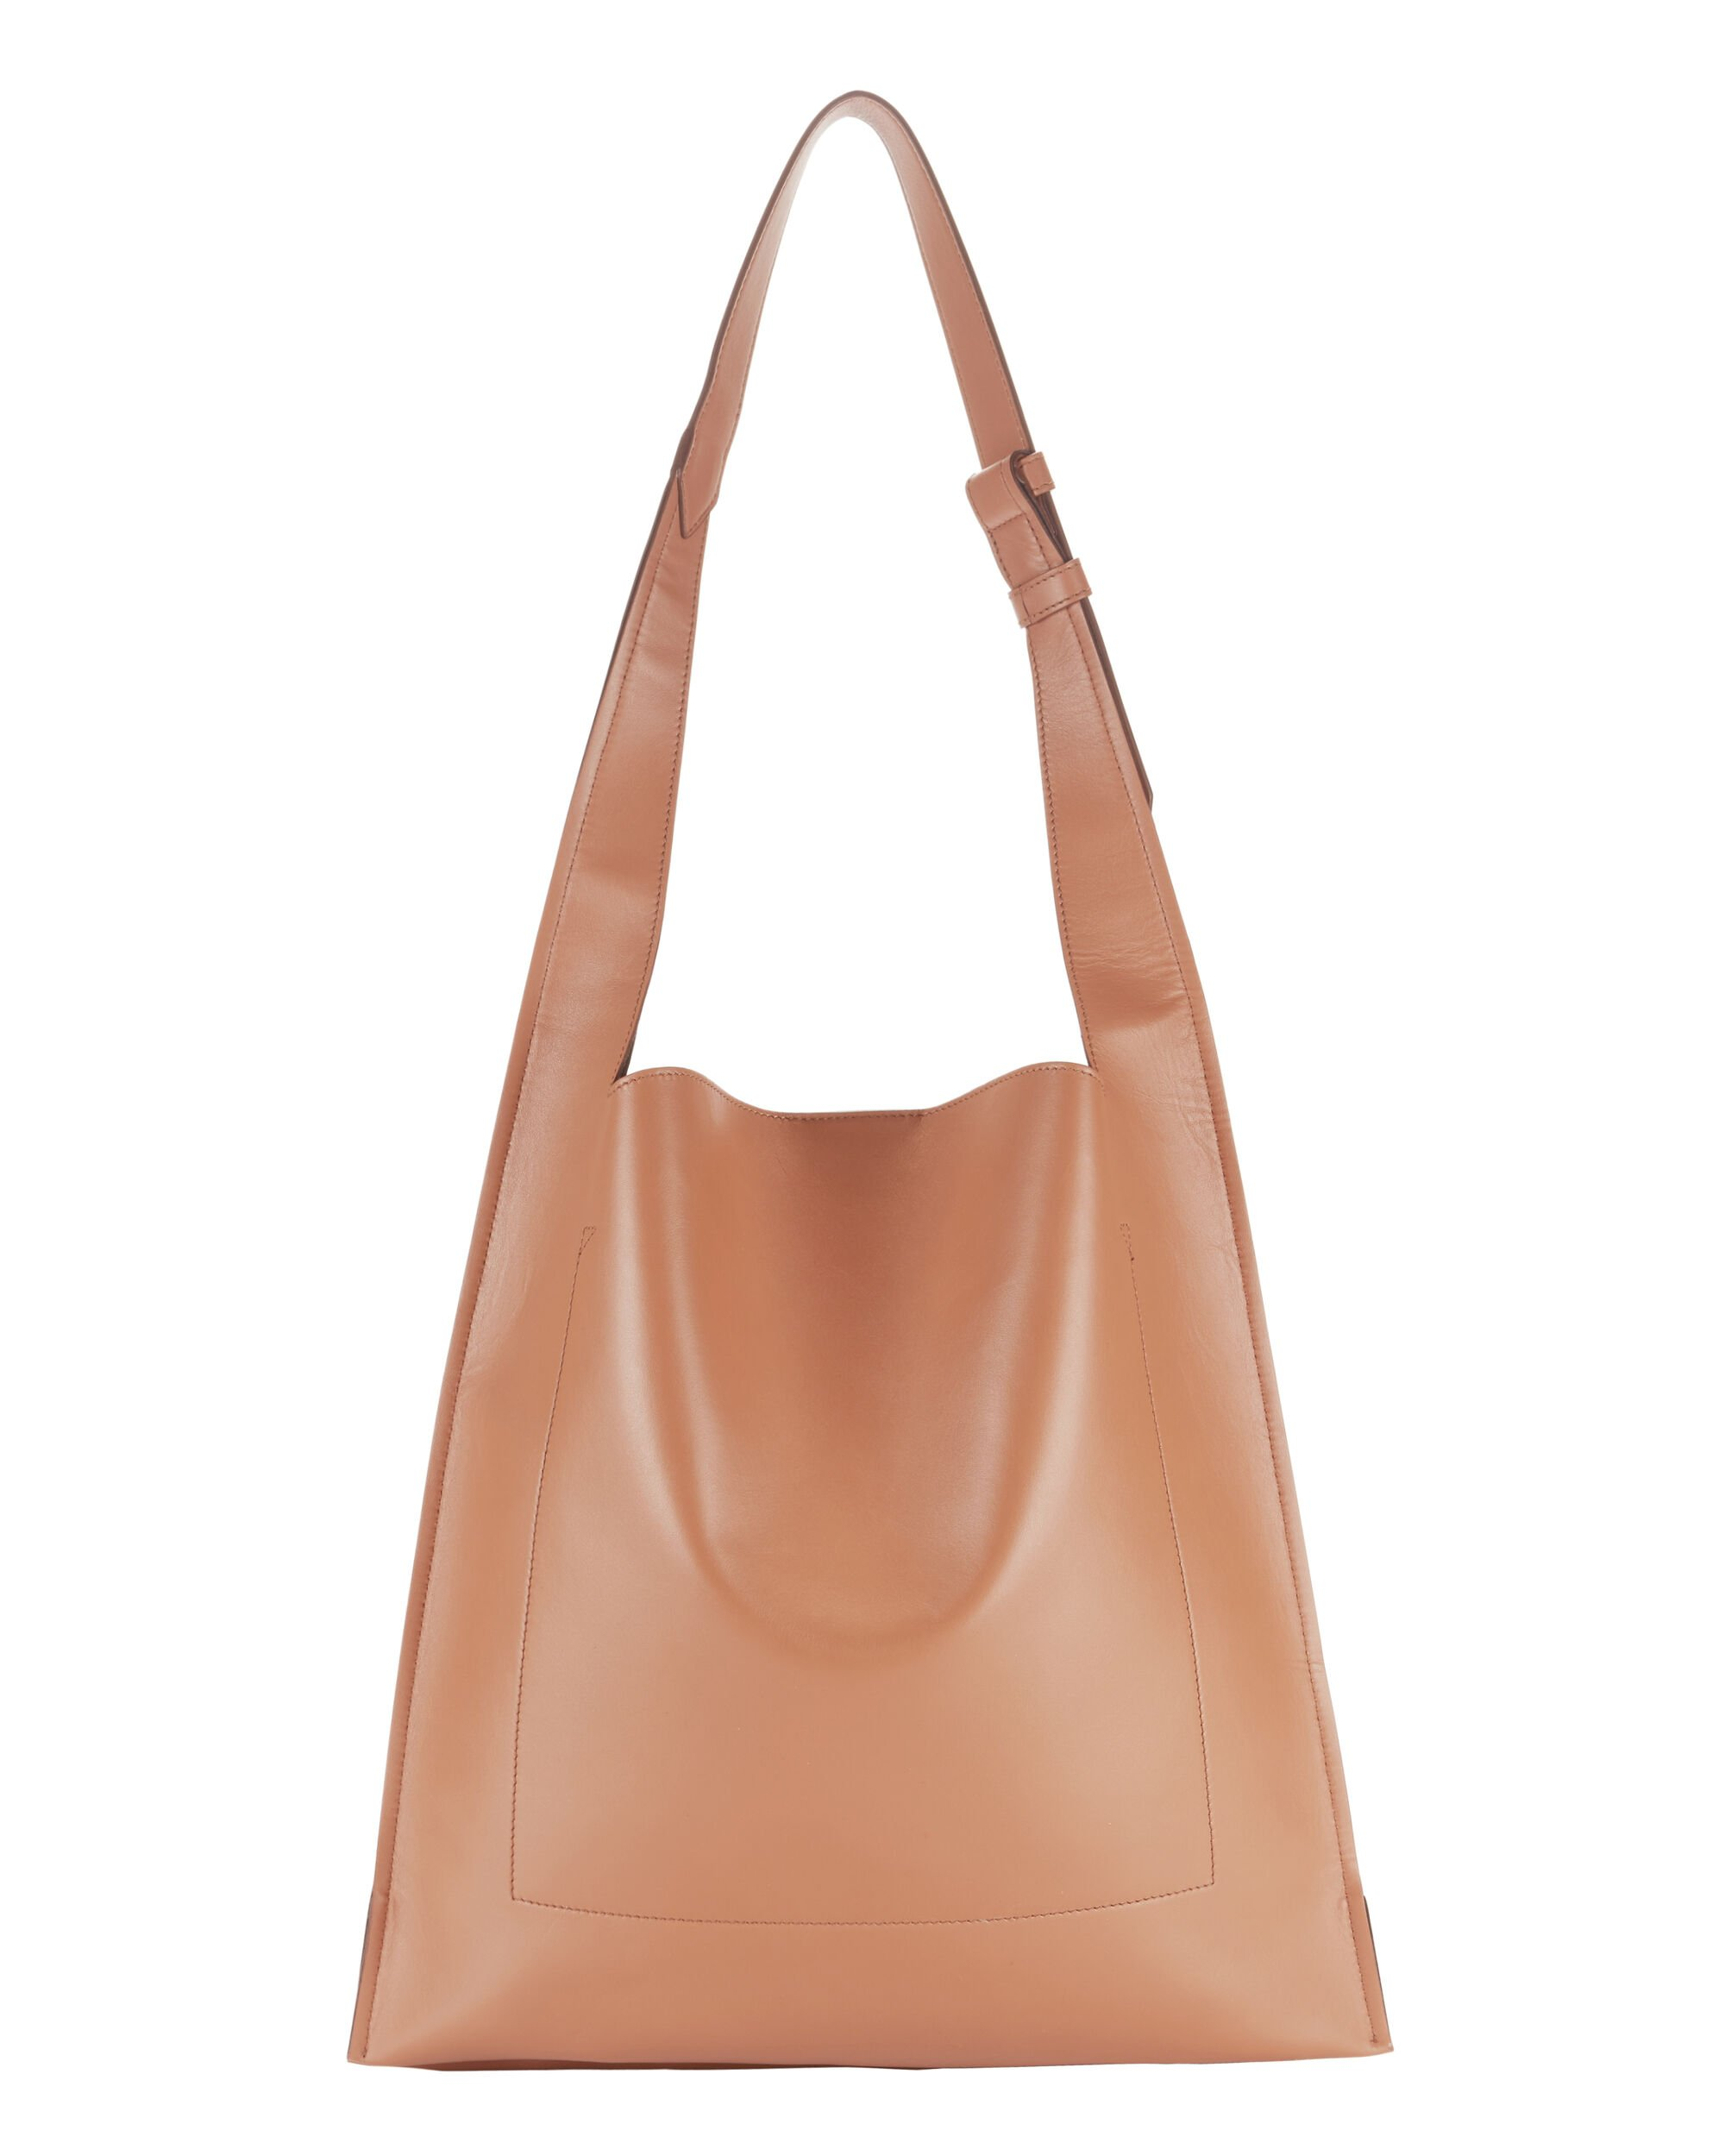 Estia Sensua Tote, BROWN, hi-res